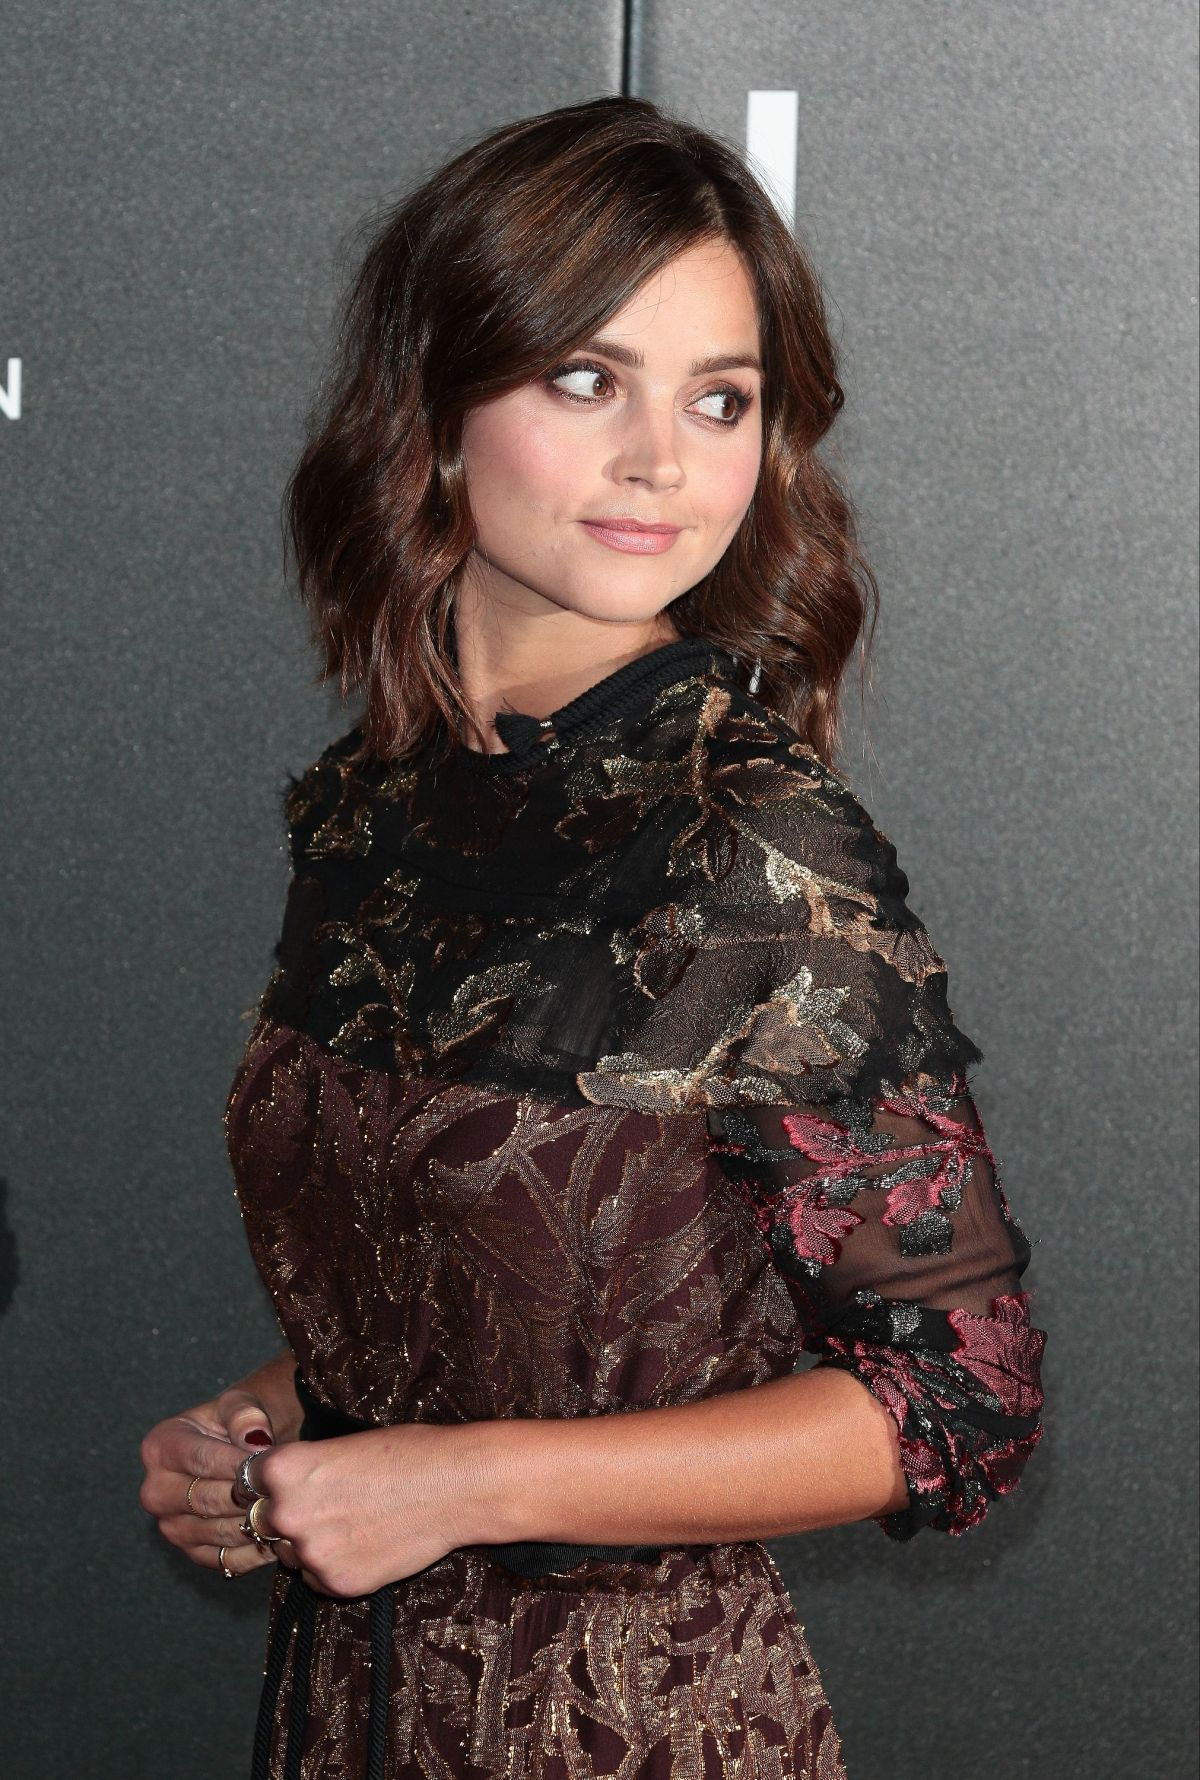 Hottest Woman 9/29/15 - JENNA COLEMAN (Doctor Who)! | King